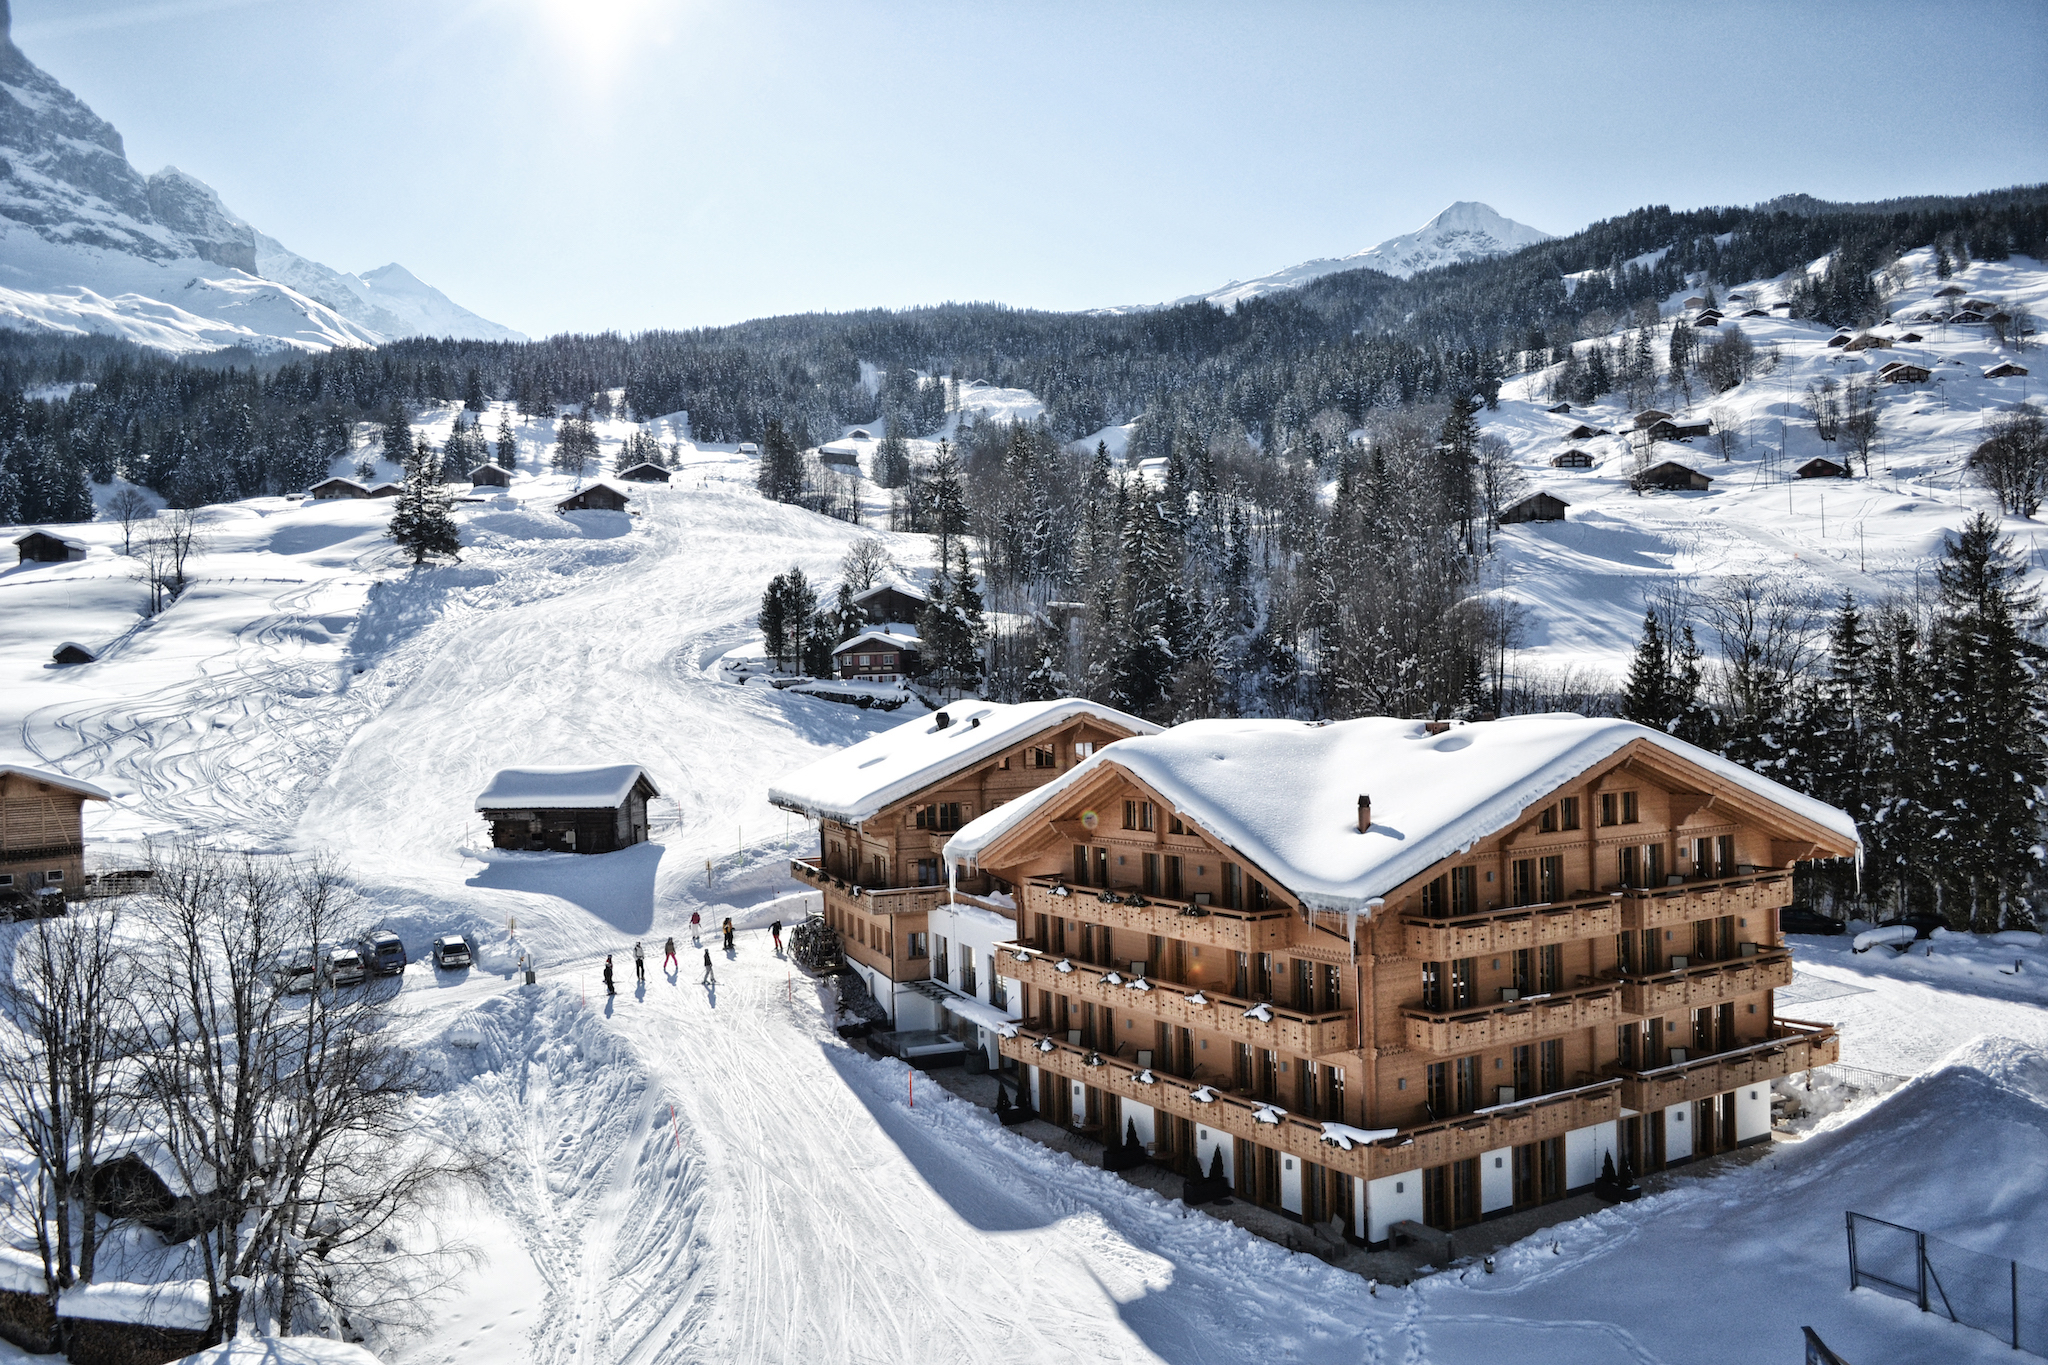 Aspen Alpin Lifestyle Hotel. Hôtel W Verbier, Verbier, for Swiss Tourism Winter Staycation advertorial